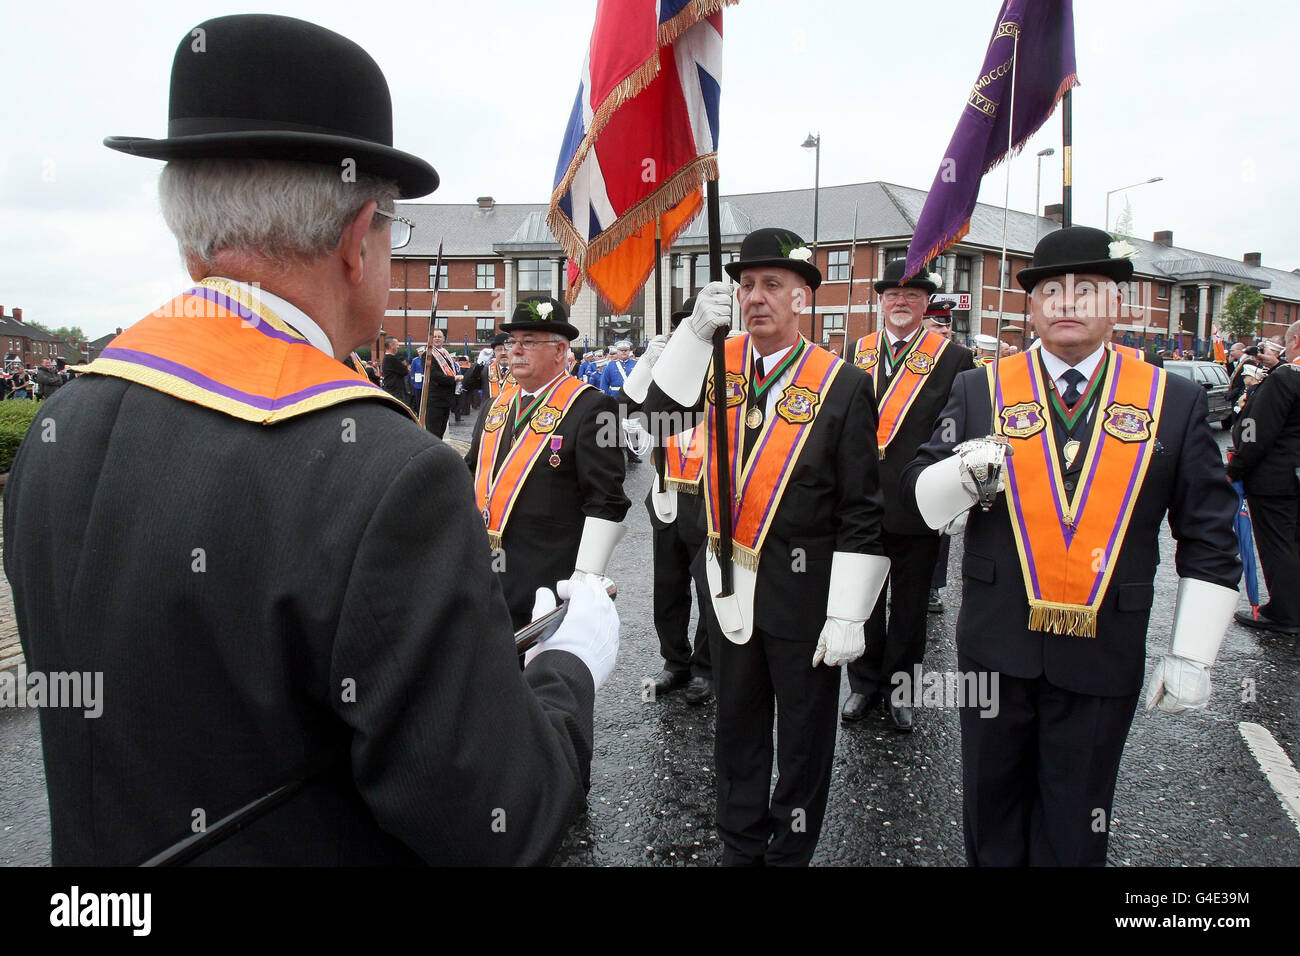 Orangemen gather at Carlisle Circus in Belfast as Orangemen celebrate the Twelfth of July which commemorates the 1690 Battle of the Boyne victory of a Protestant over a Catholic monarch. Stock Photo